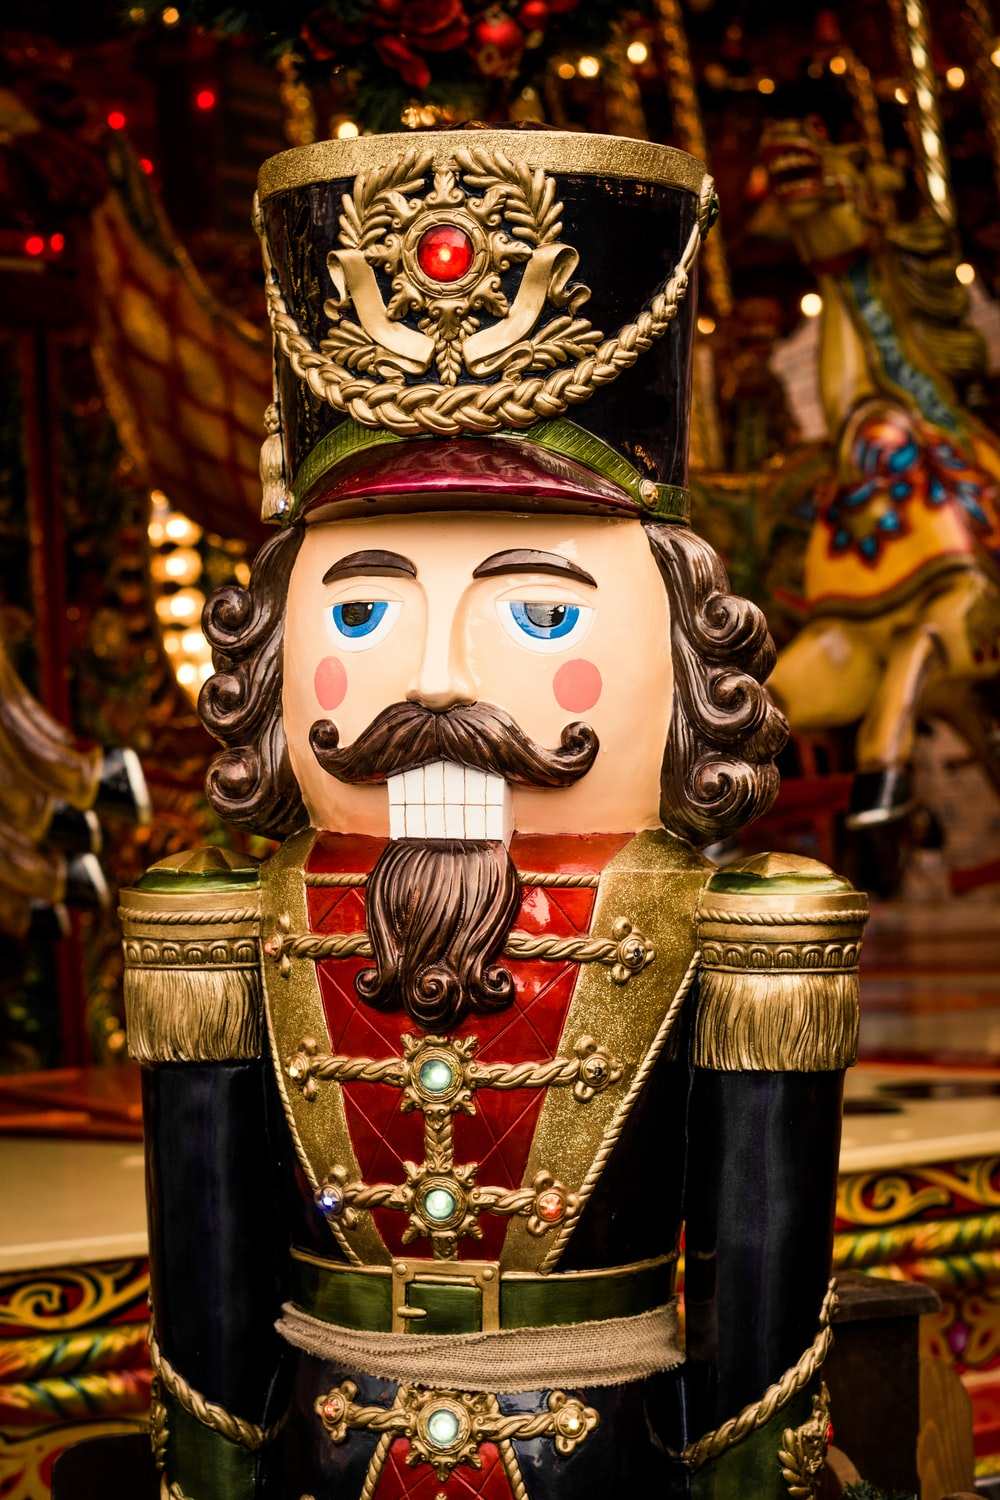 red, gold, and black nutcracker